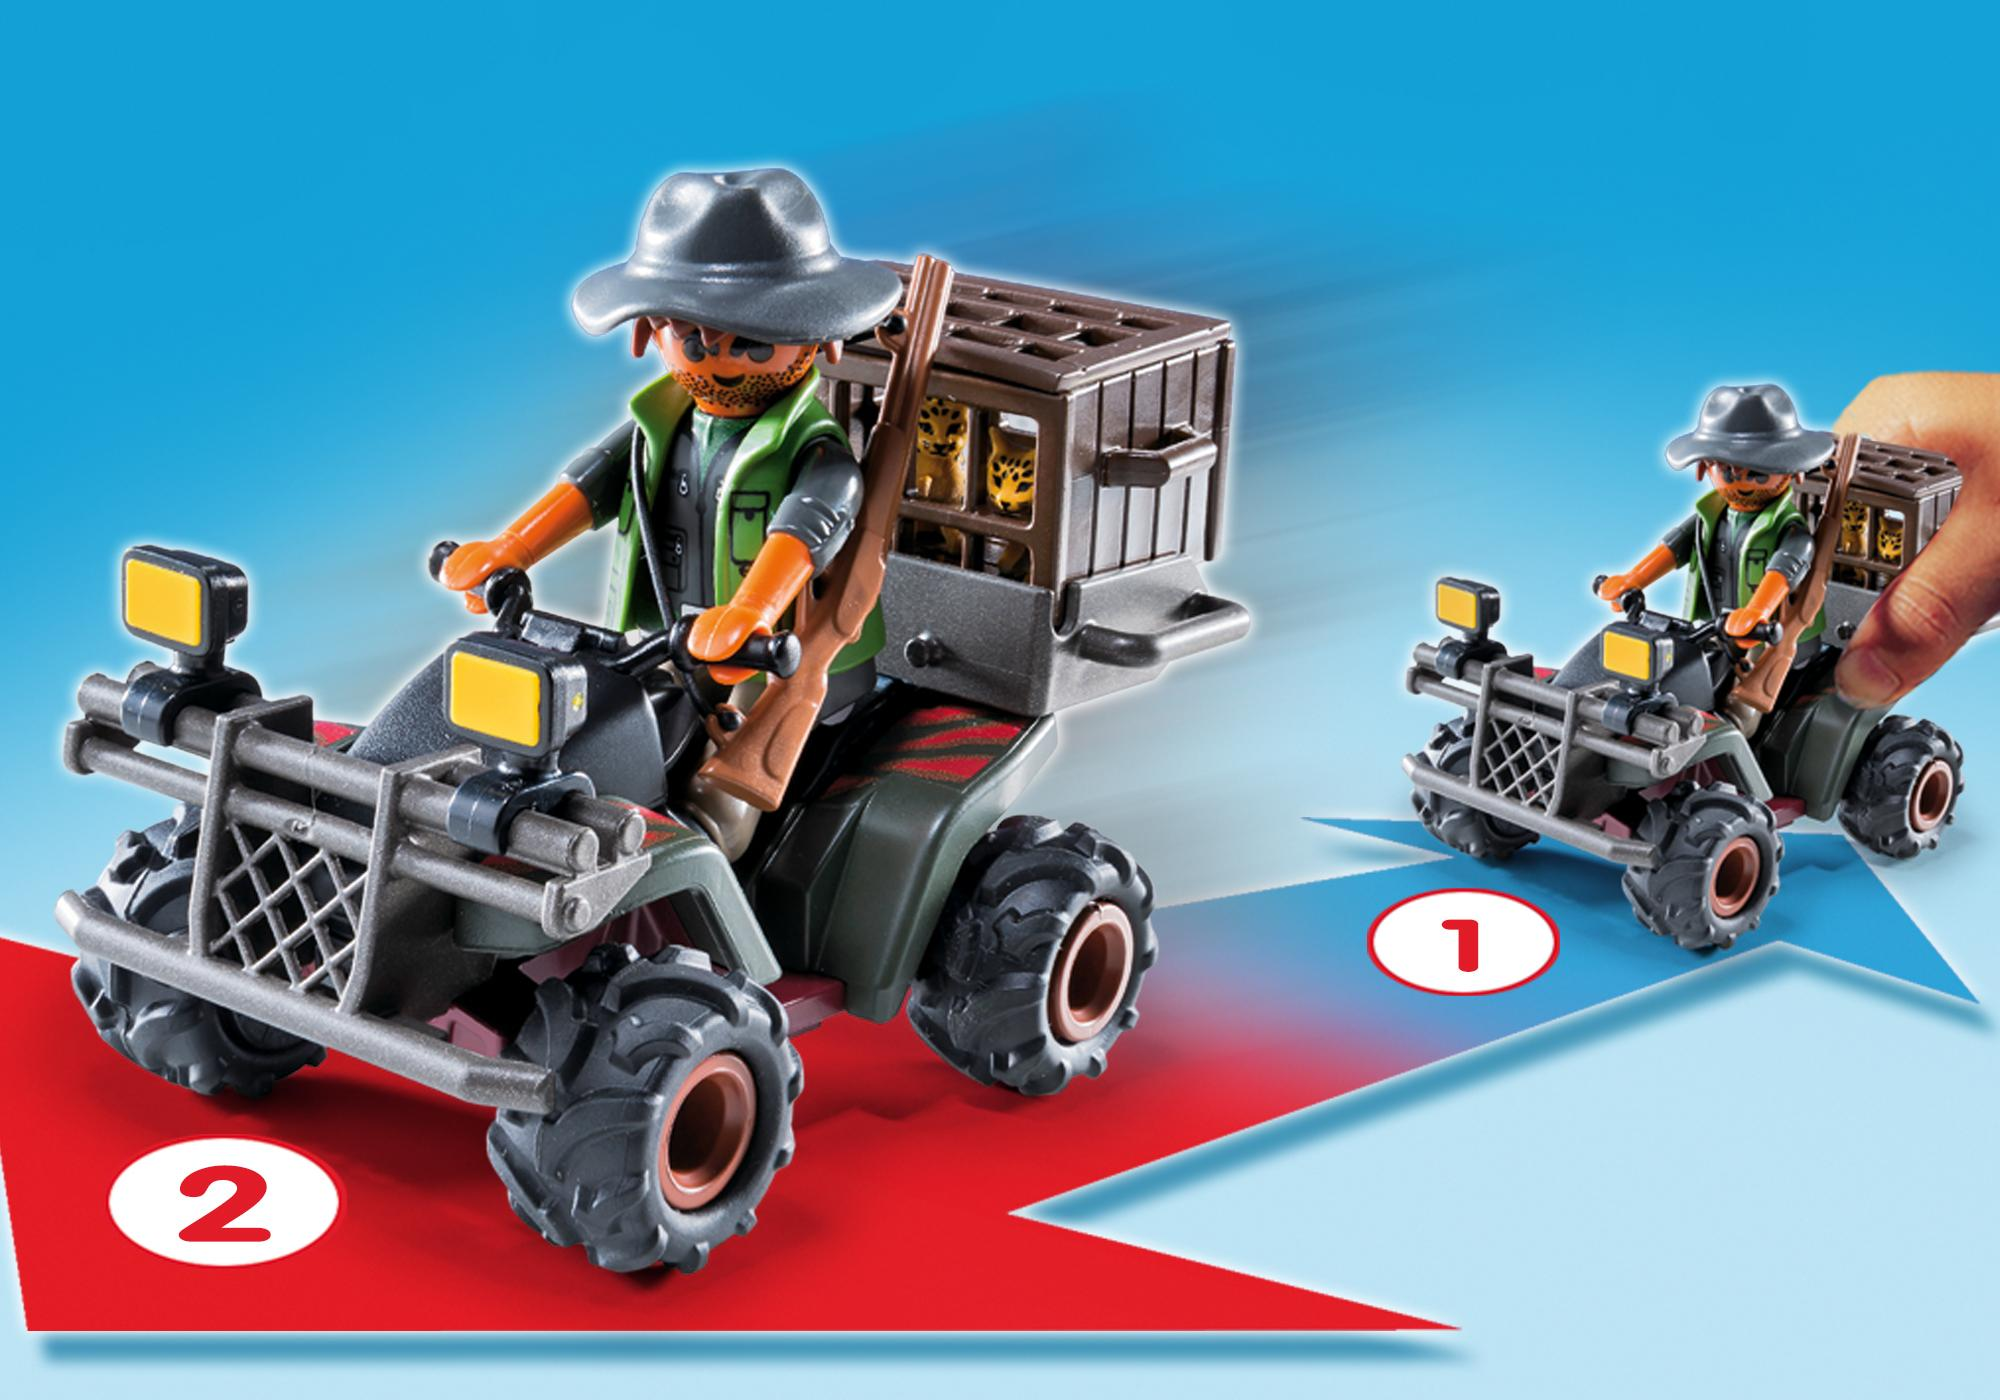 http://media.playmobil.com/i/playmobil/6939_product_extra1